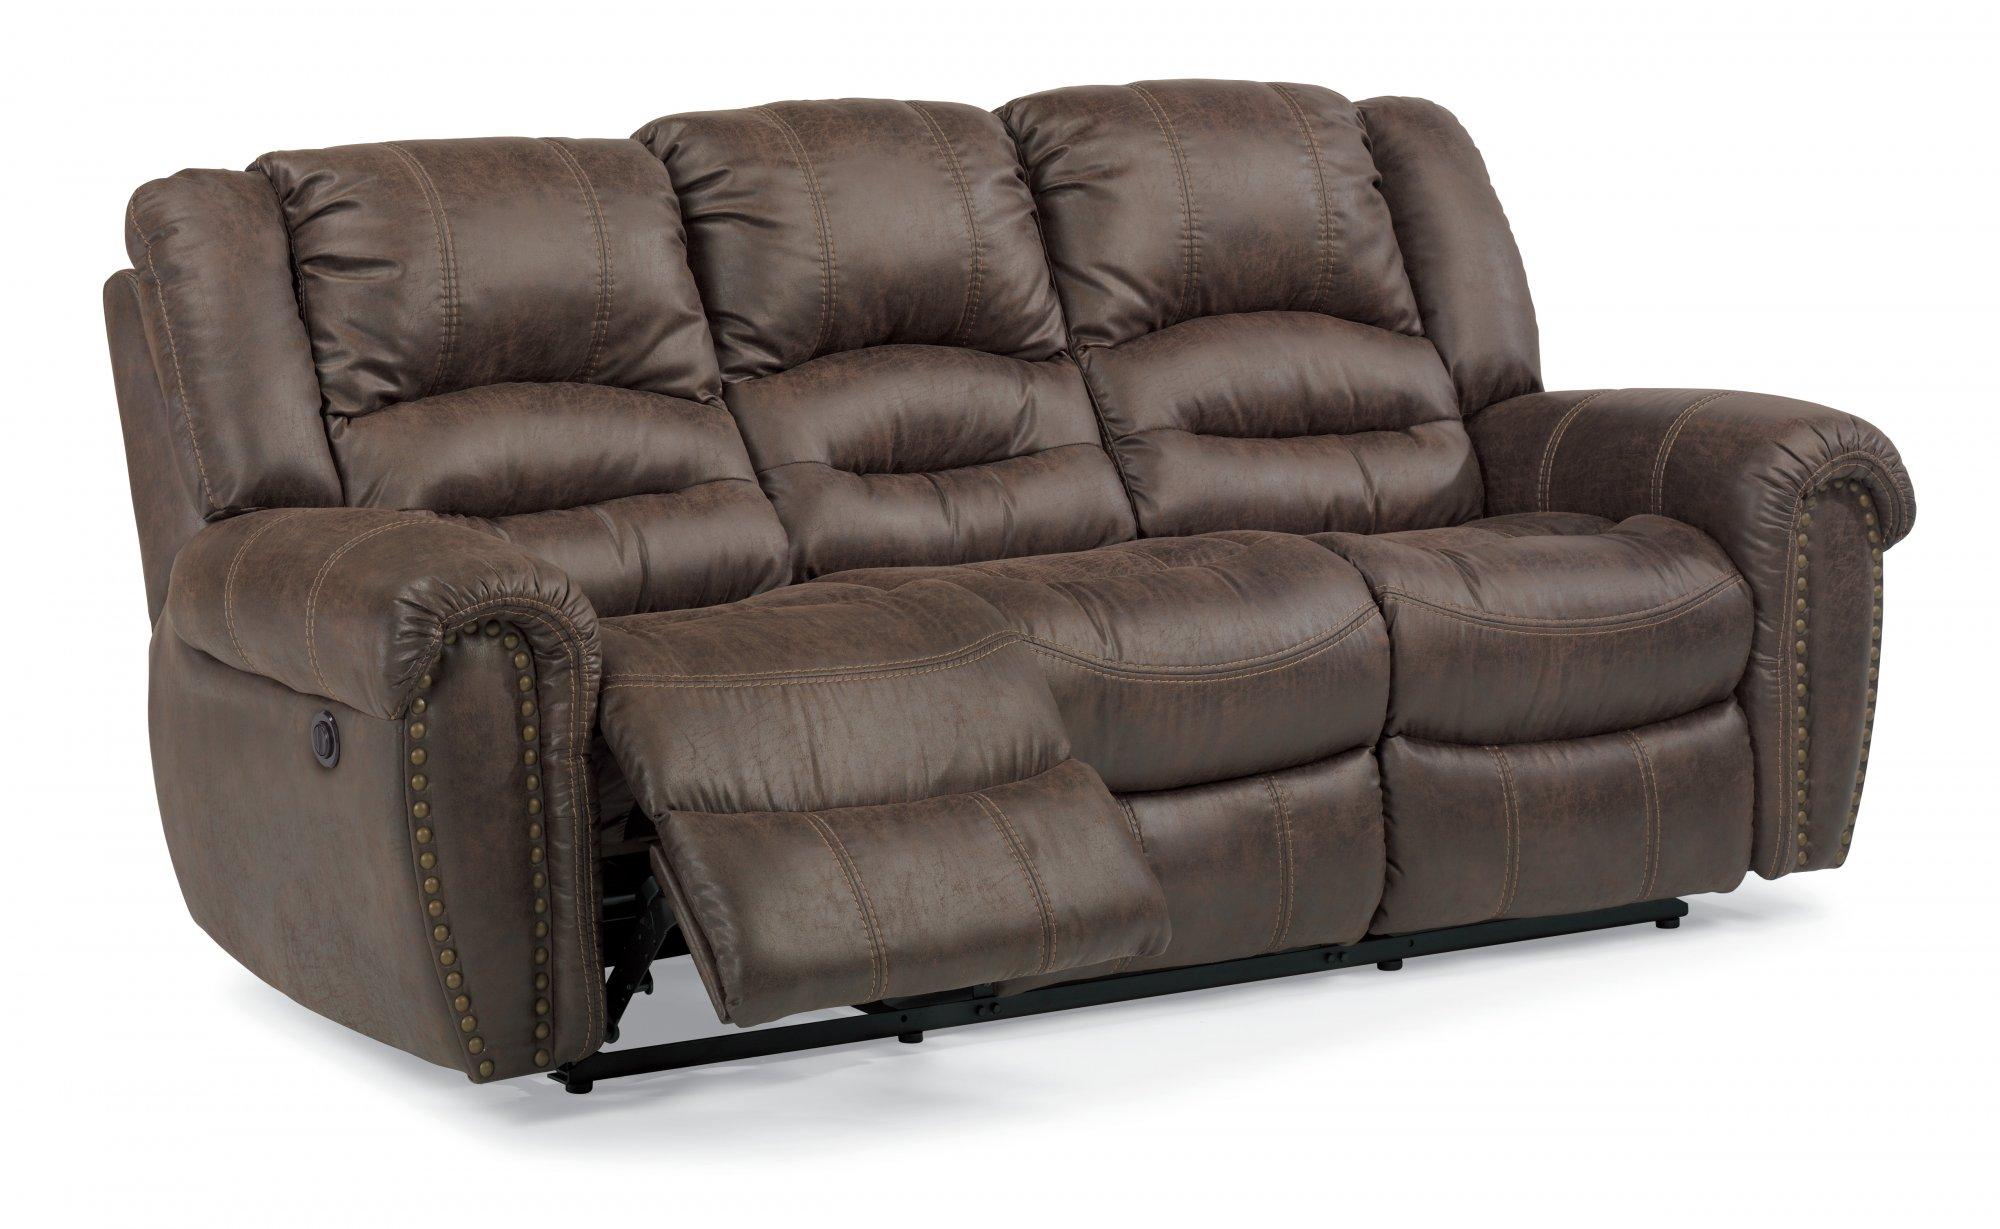 Downtown Fabric Power Reclining Sofa W Padded Arms